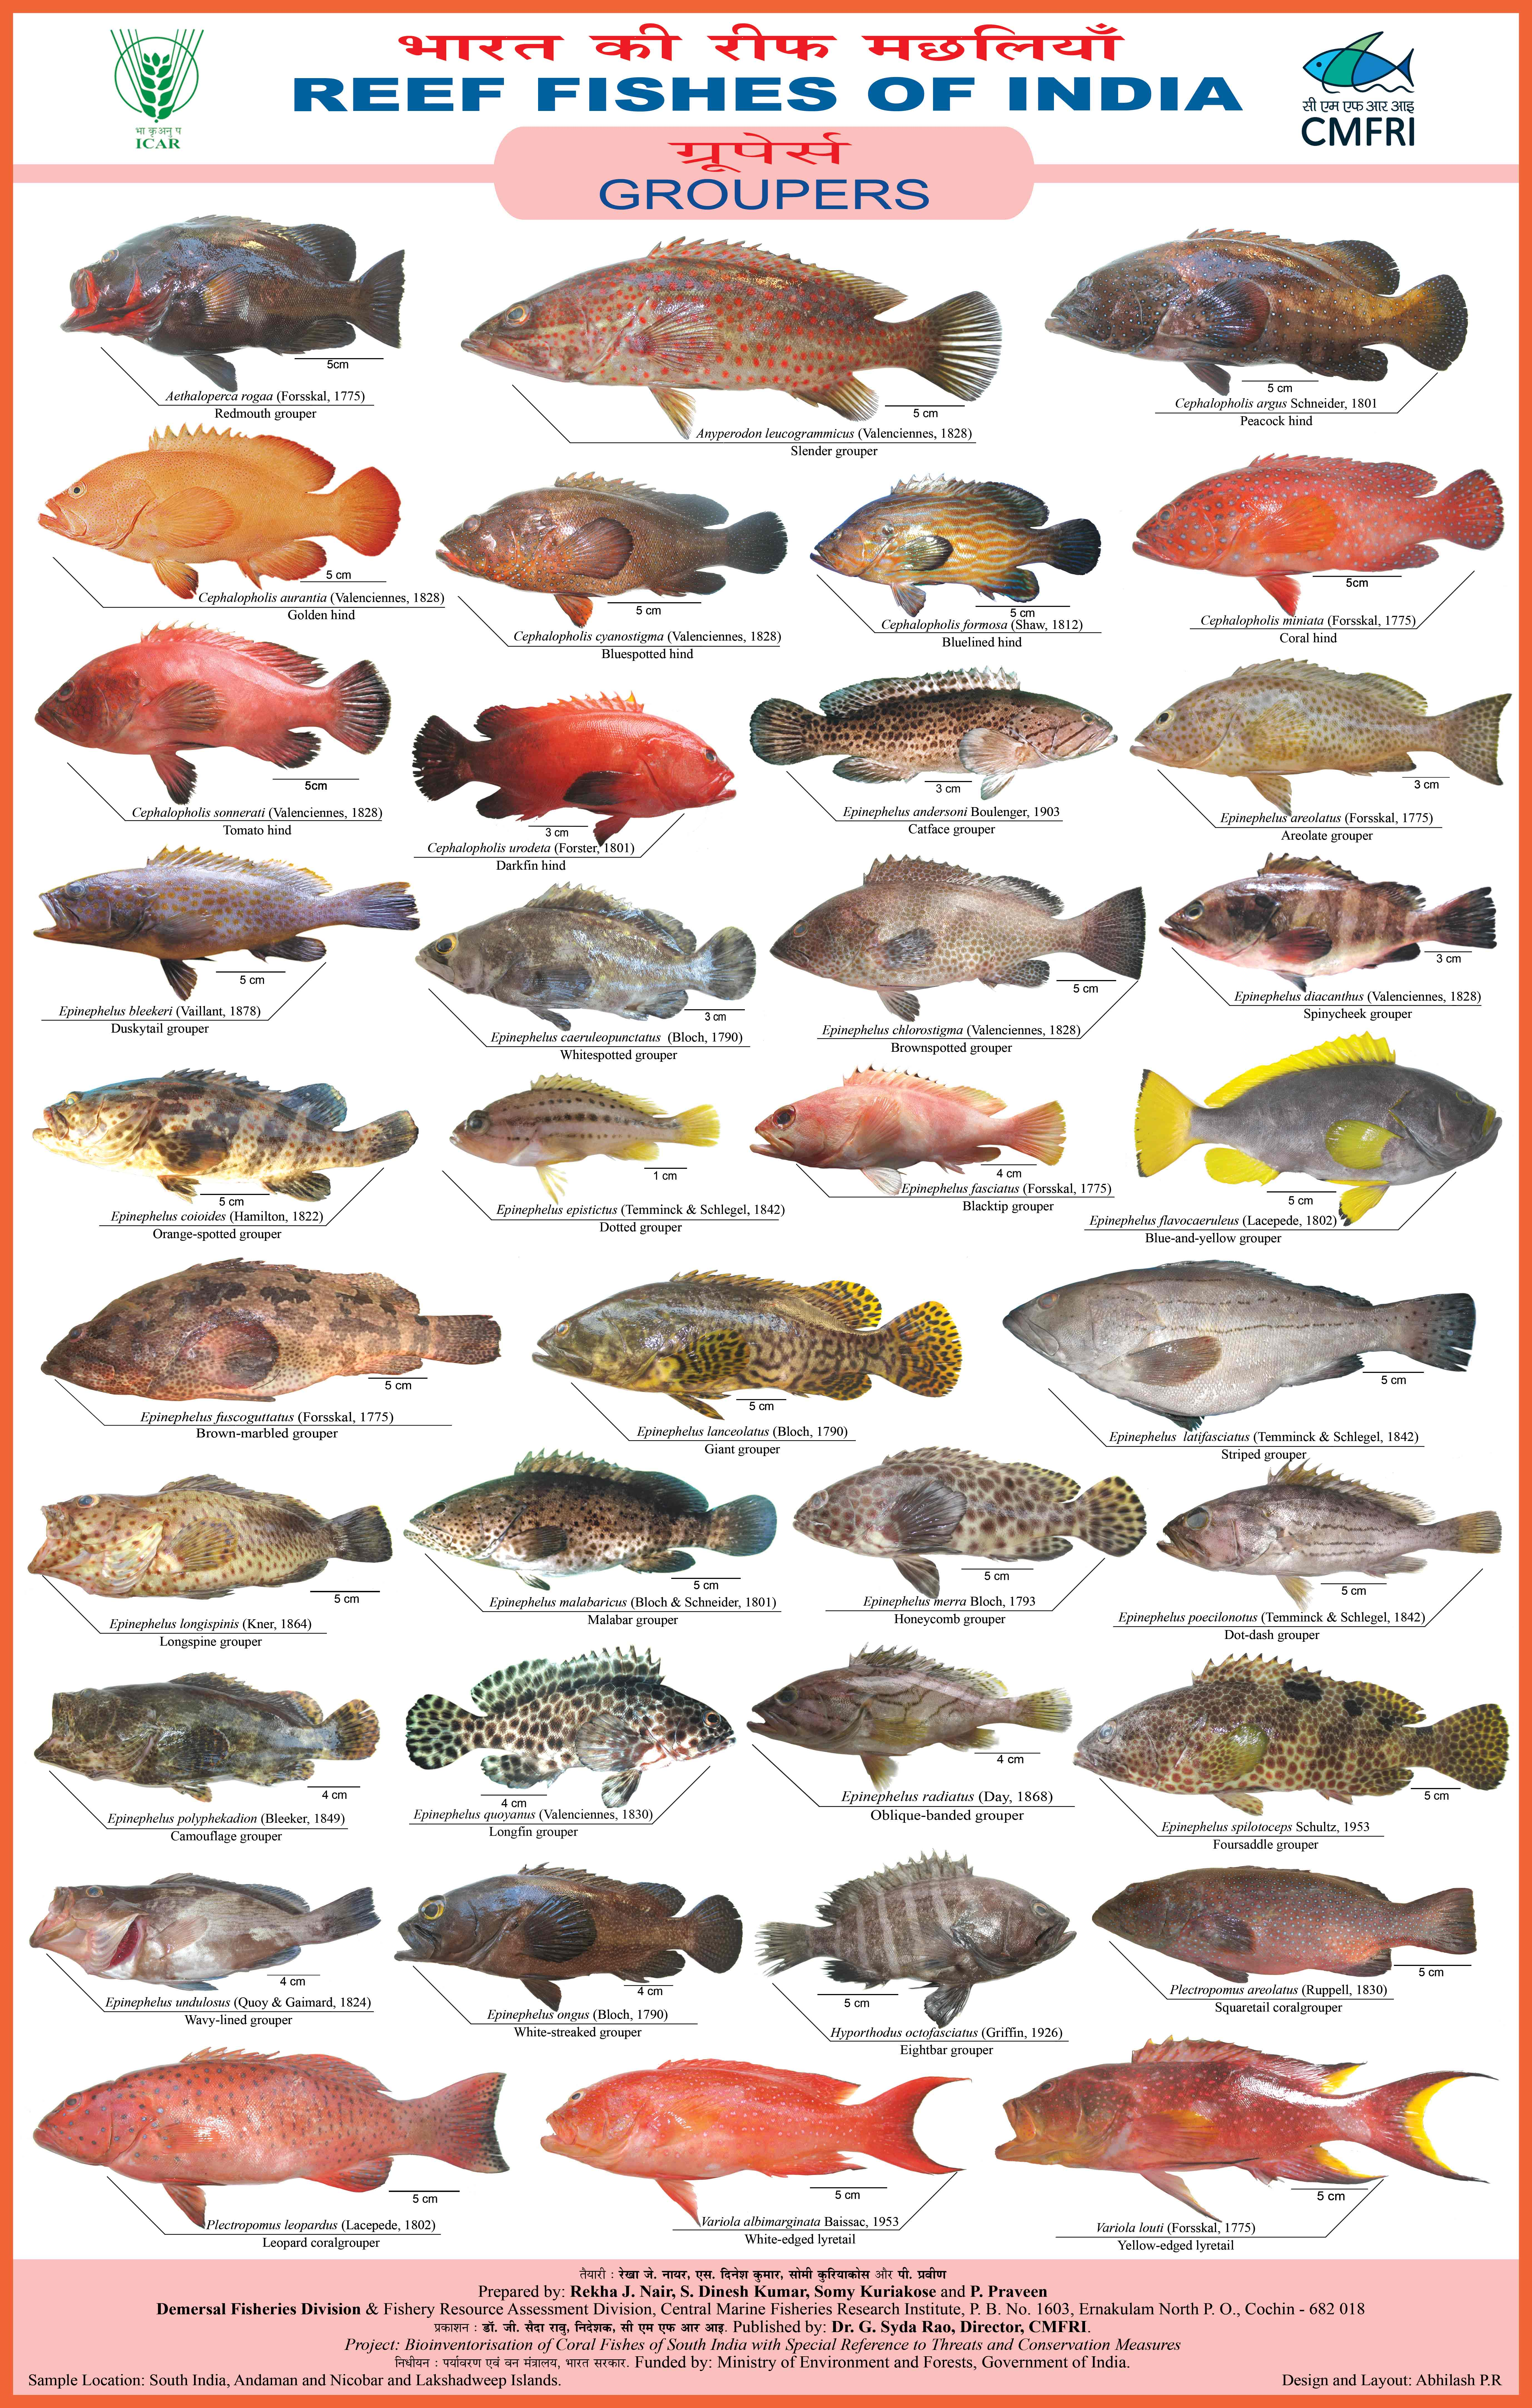 Reef fishes of india groupers cmfri repository for Types of red fish